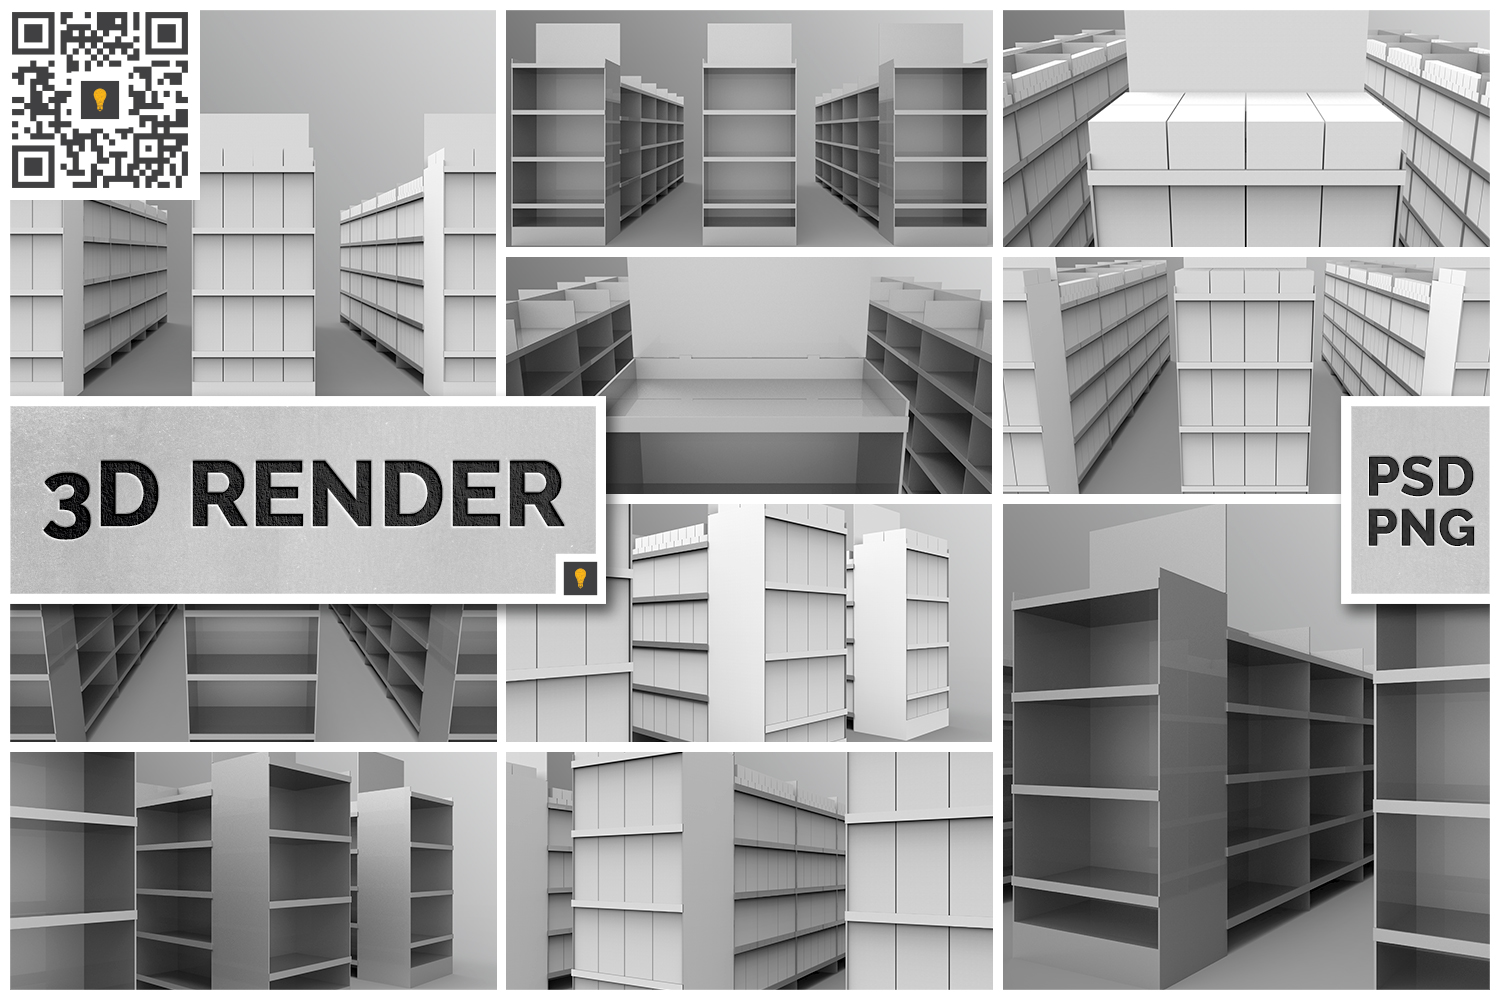 Aisle with Gondola Store 3D Render example image 1